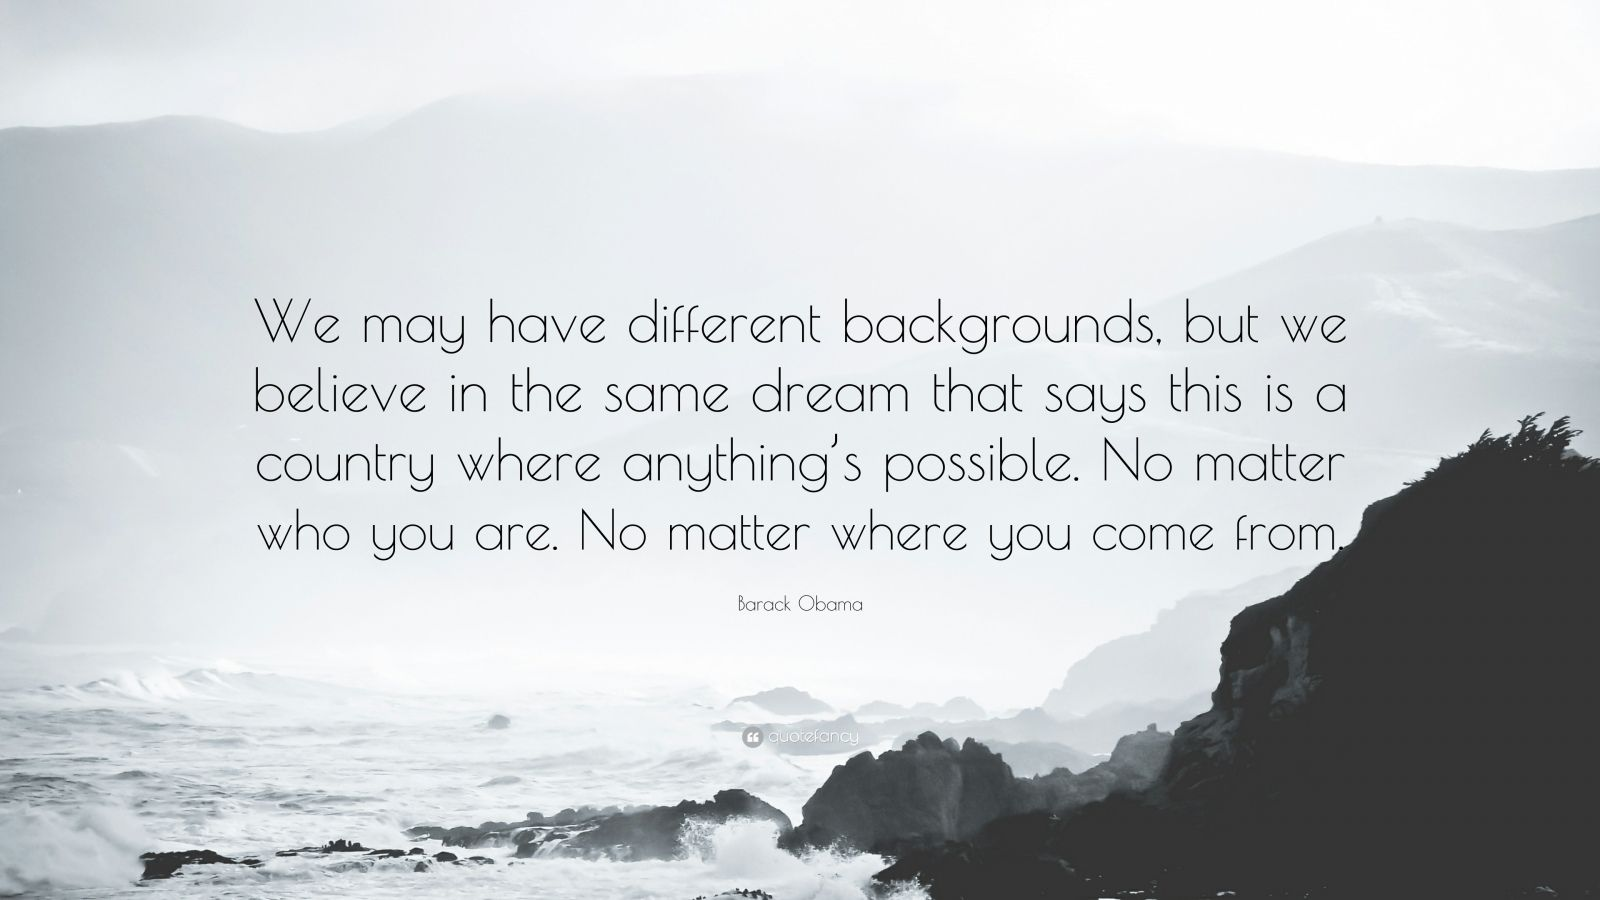 """Barack Obama Quote: """"We may have different backgrounds, but we believe in the same dream that says this is a country where anything's possible. No matter who you are. No matter where you come from."""""""